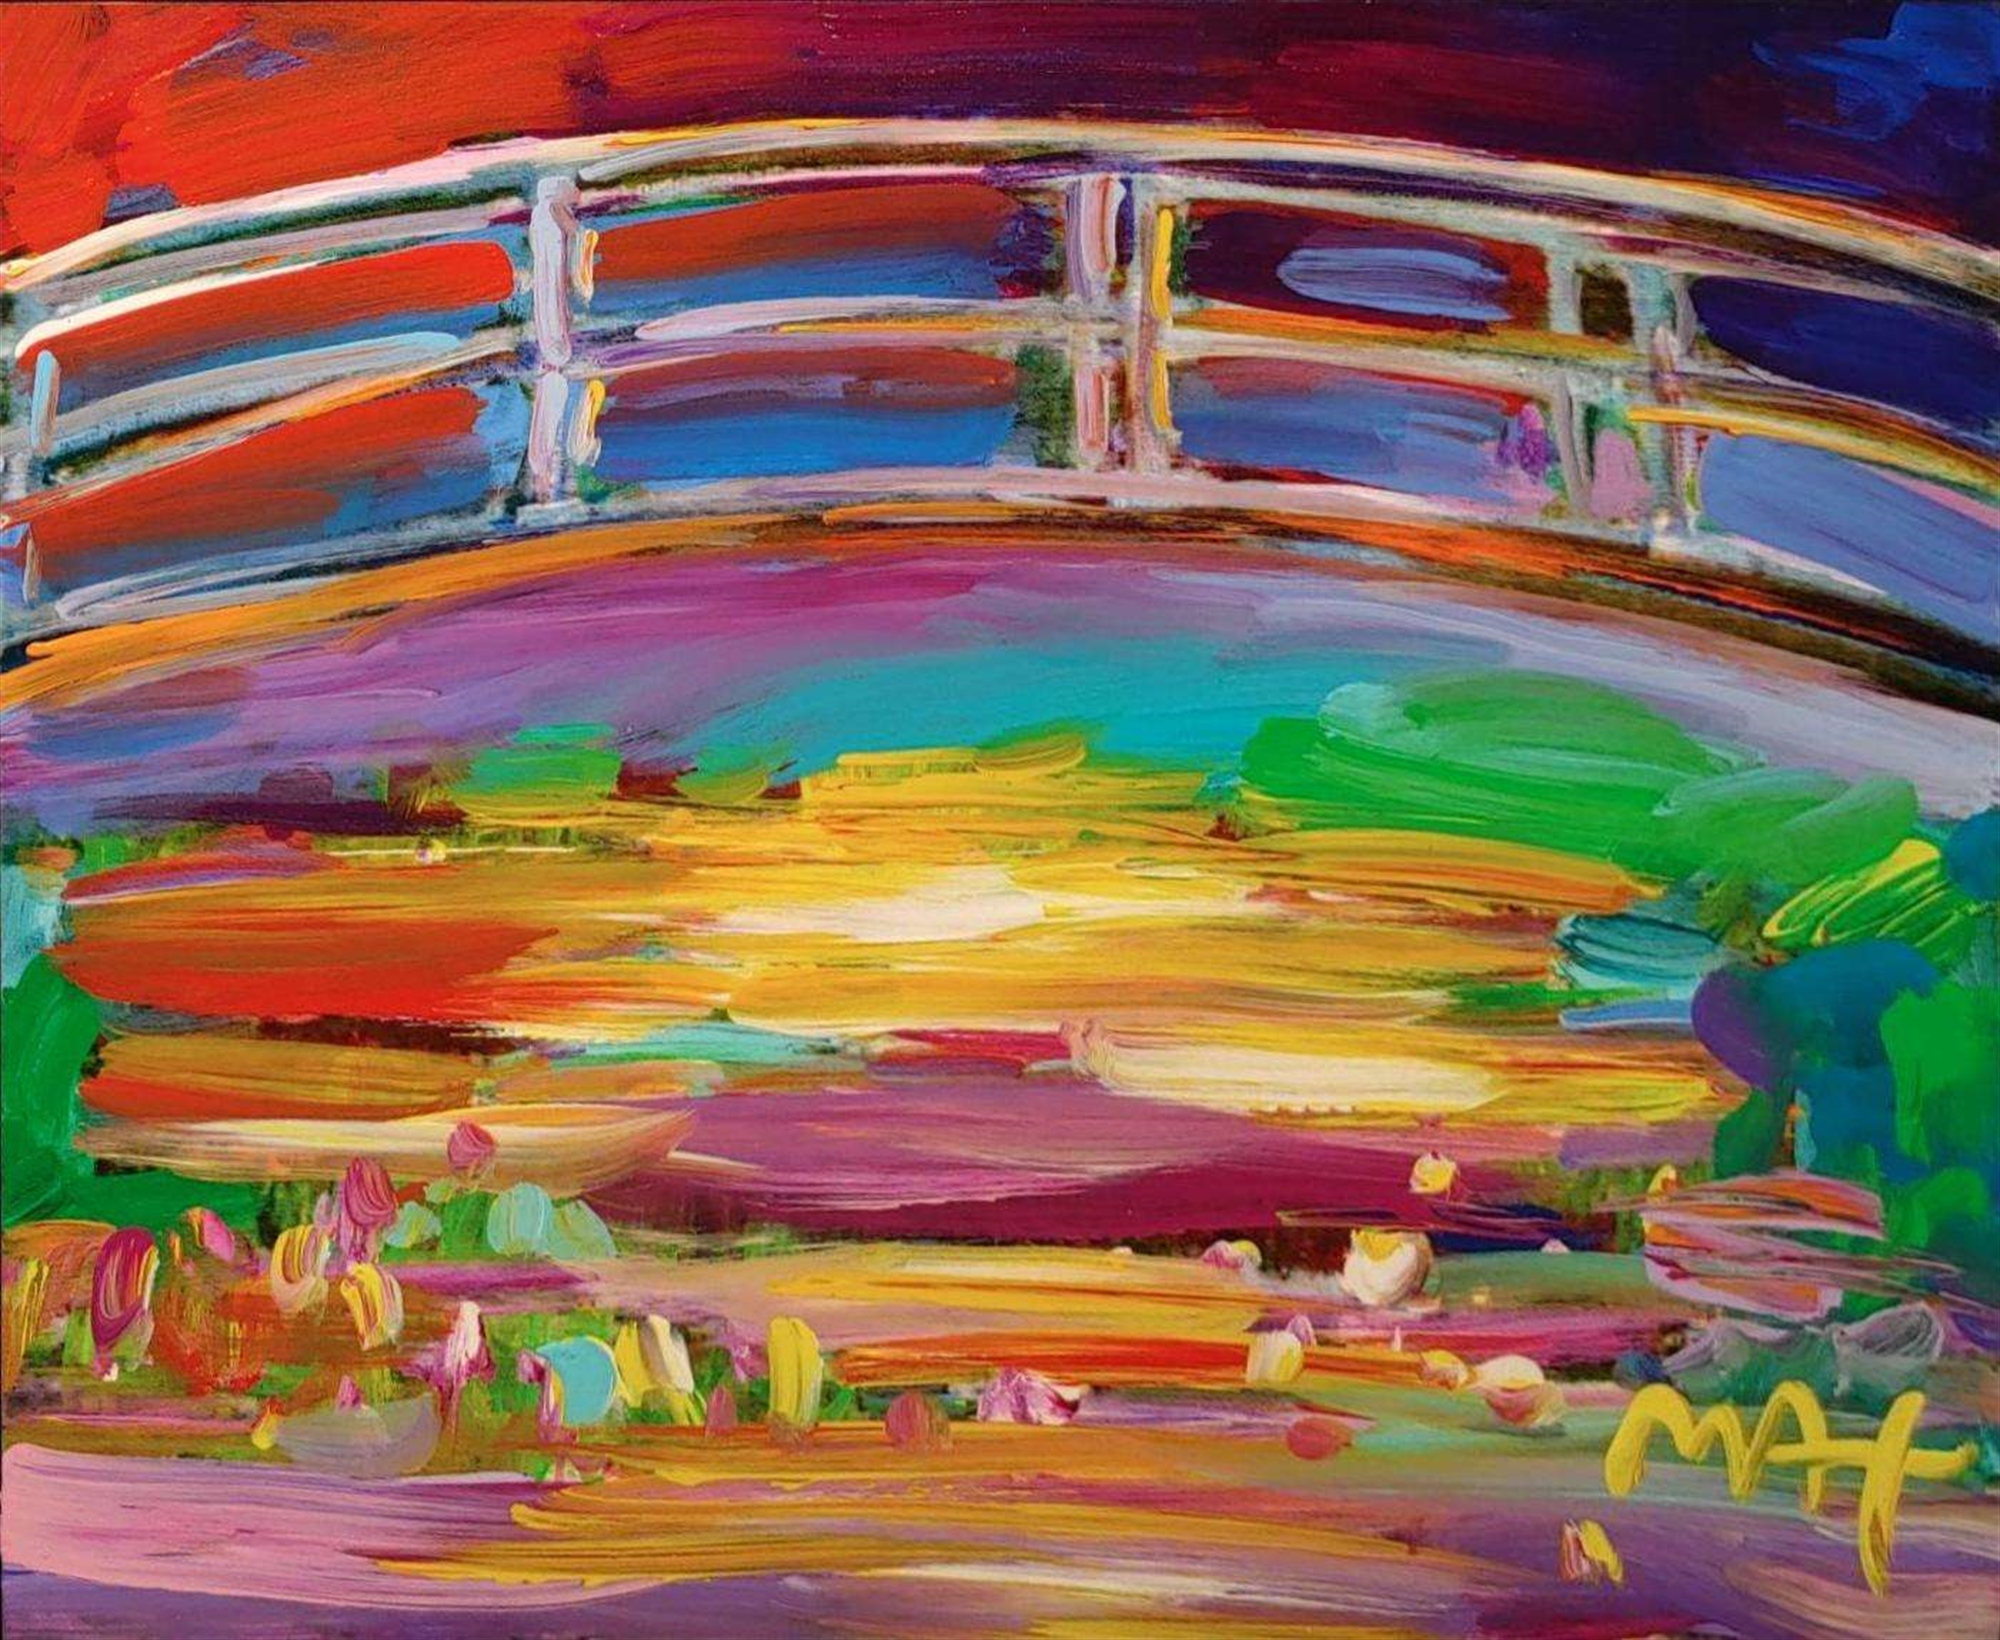 HOMAGE TO MONET: THE JAPANESE BRIDGE by Peter Max